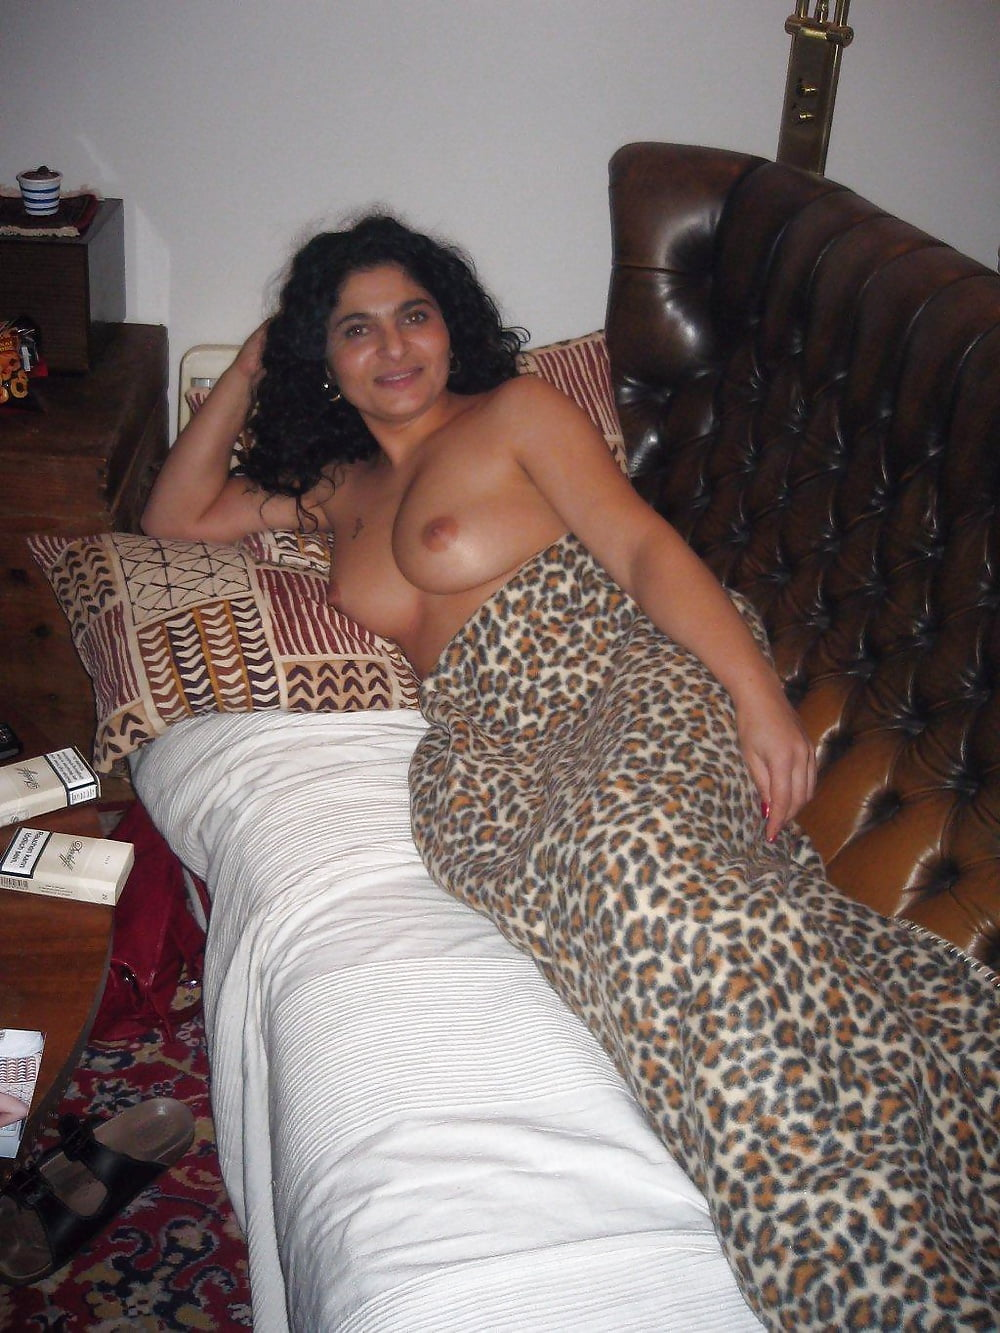 orgies-password-egyptian-sexy-housewives-out